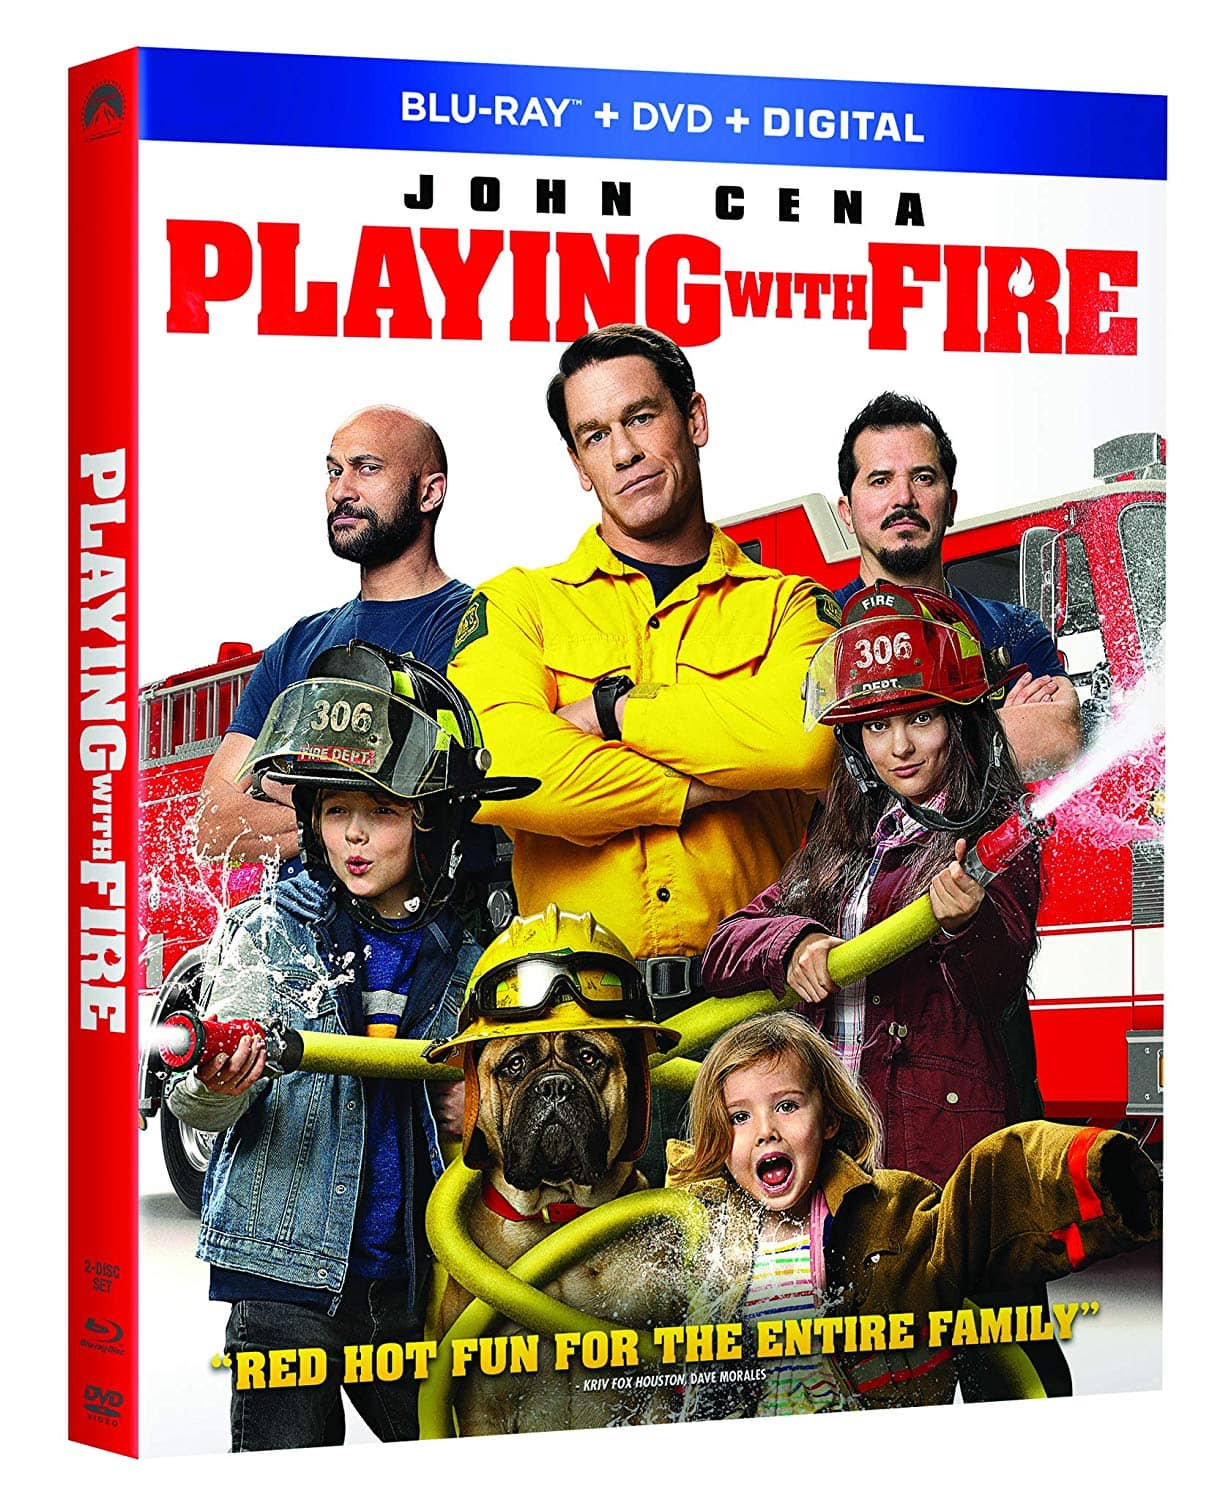 PLAYING WITH FIRE Bluray